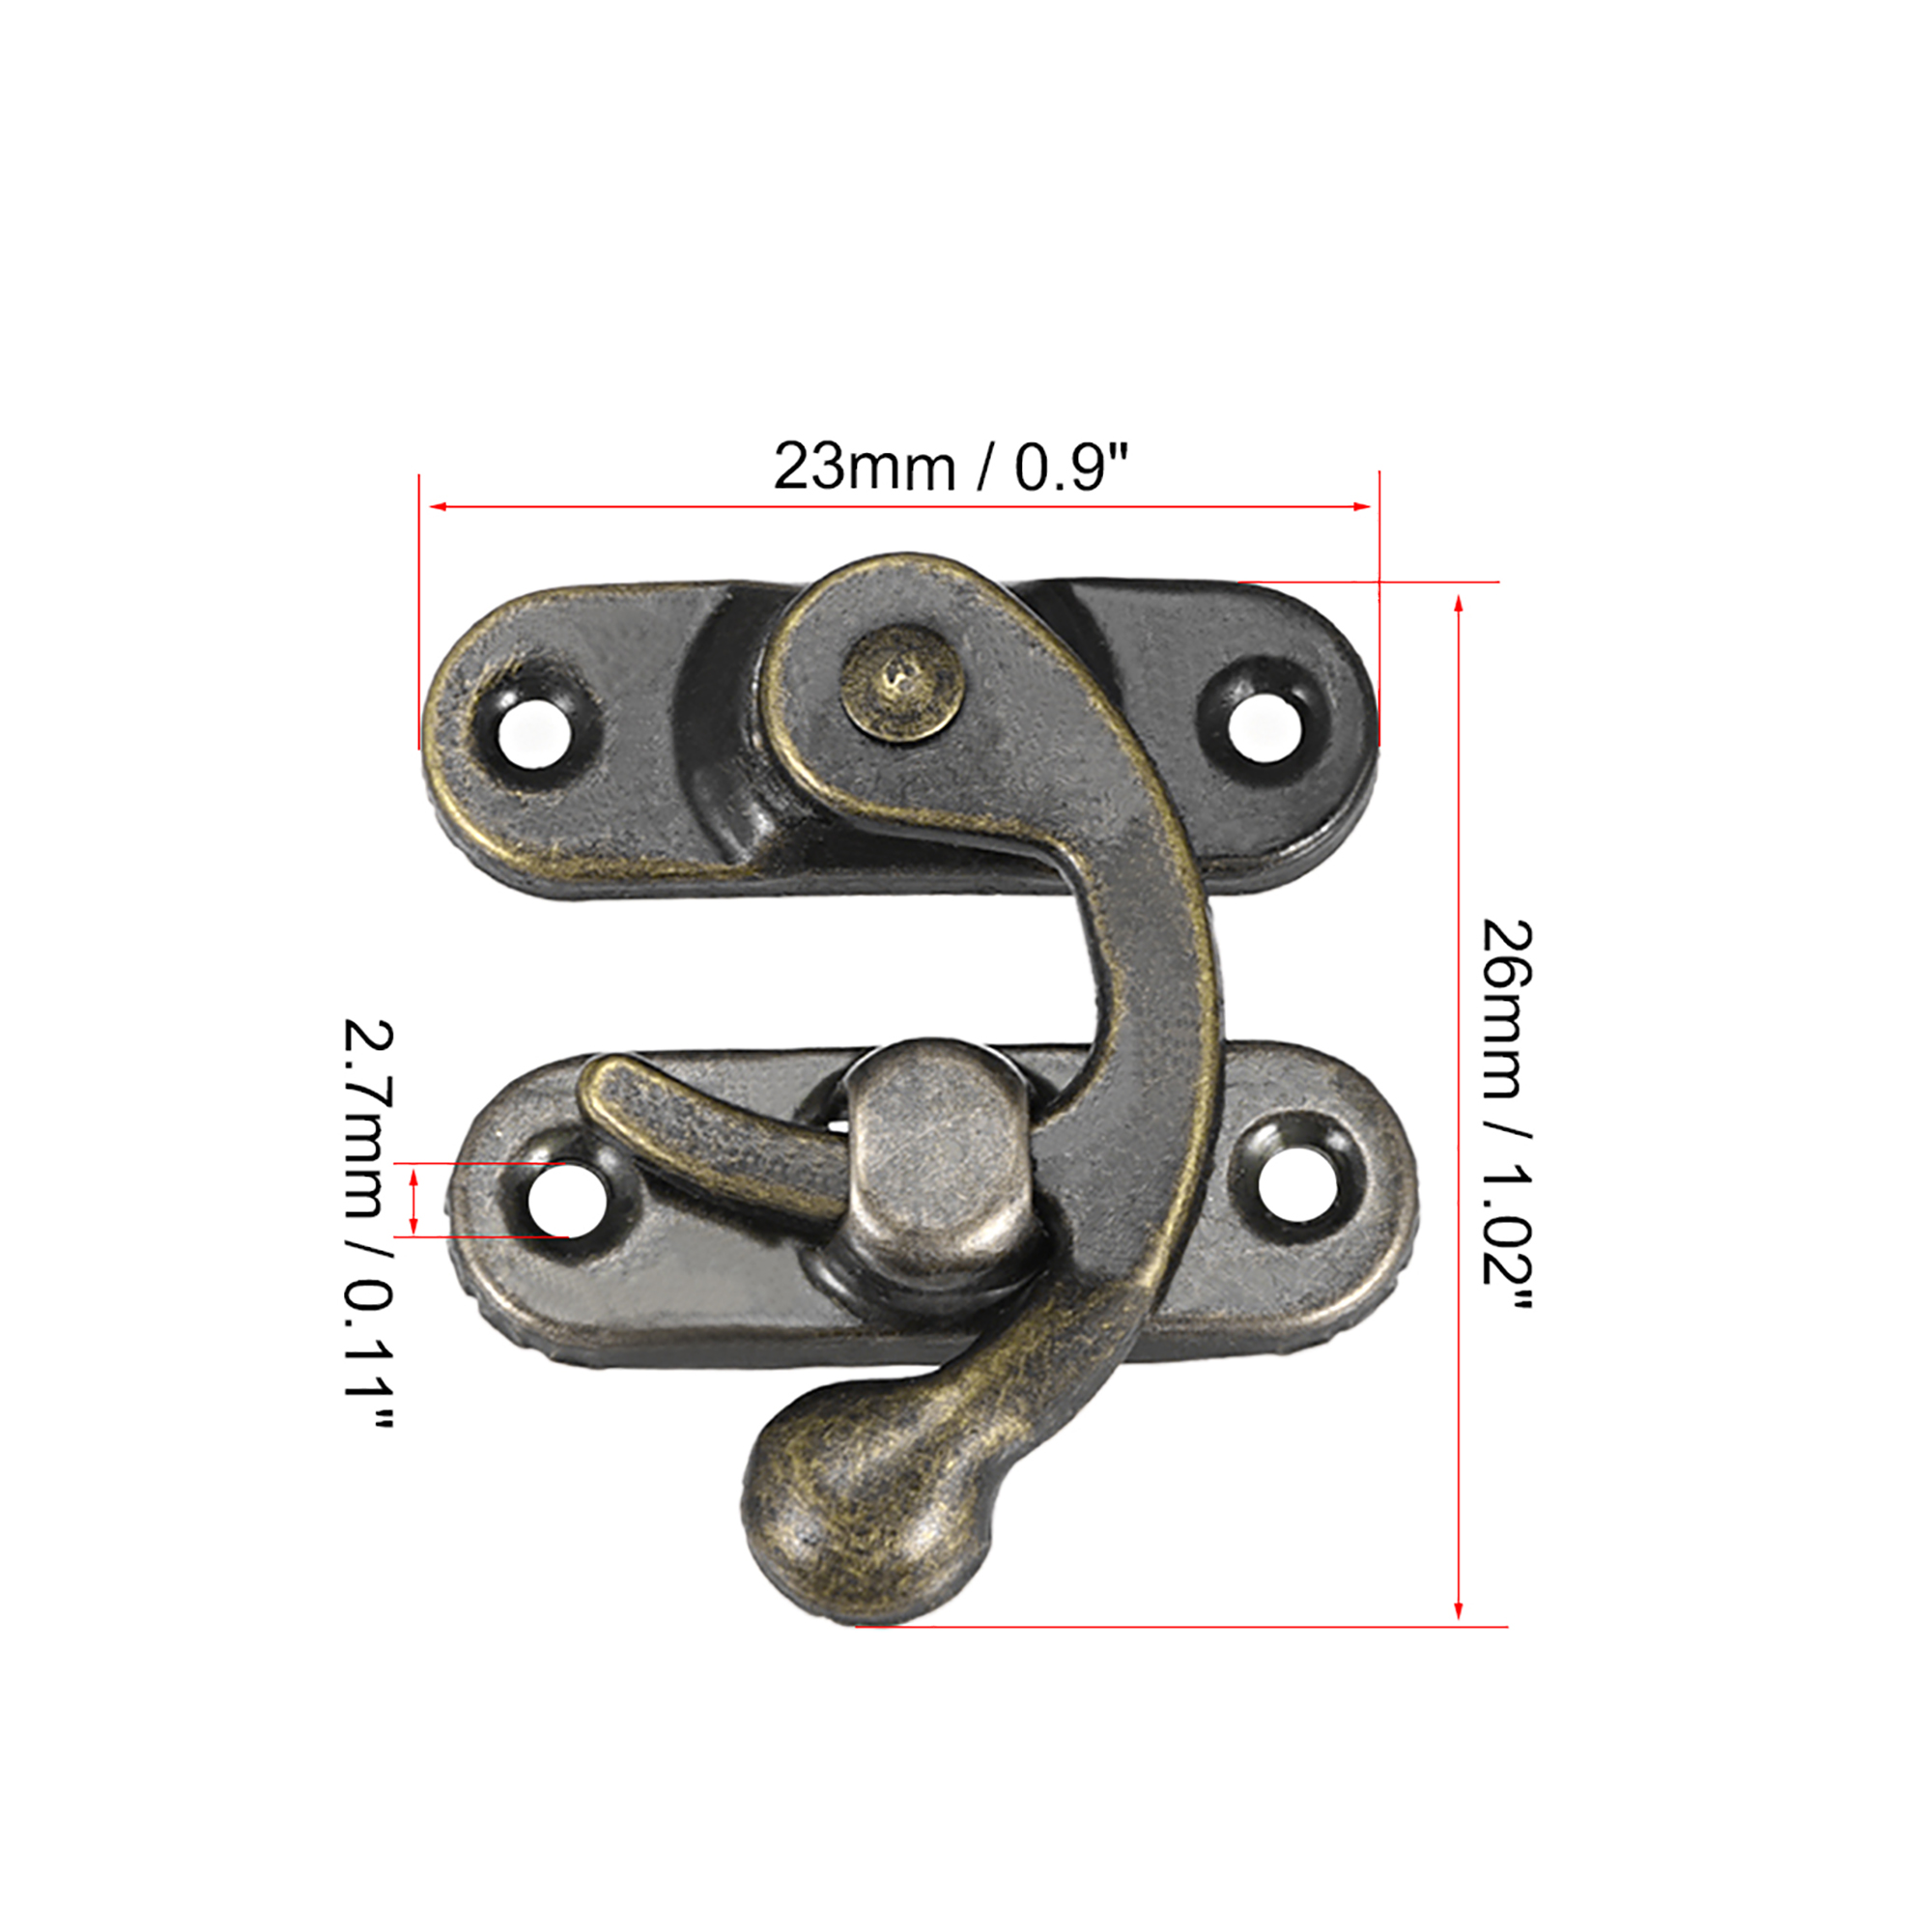 Antique Right Latch Hook Hasp, 26mm Swing Arm Latch Plated Bronze 20 Pcs w Screws - image 3 of 4